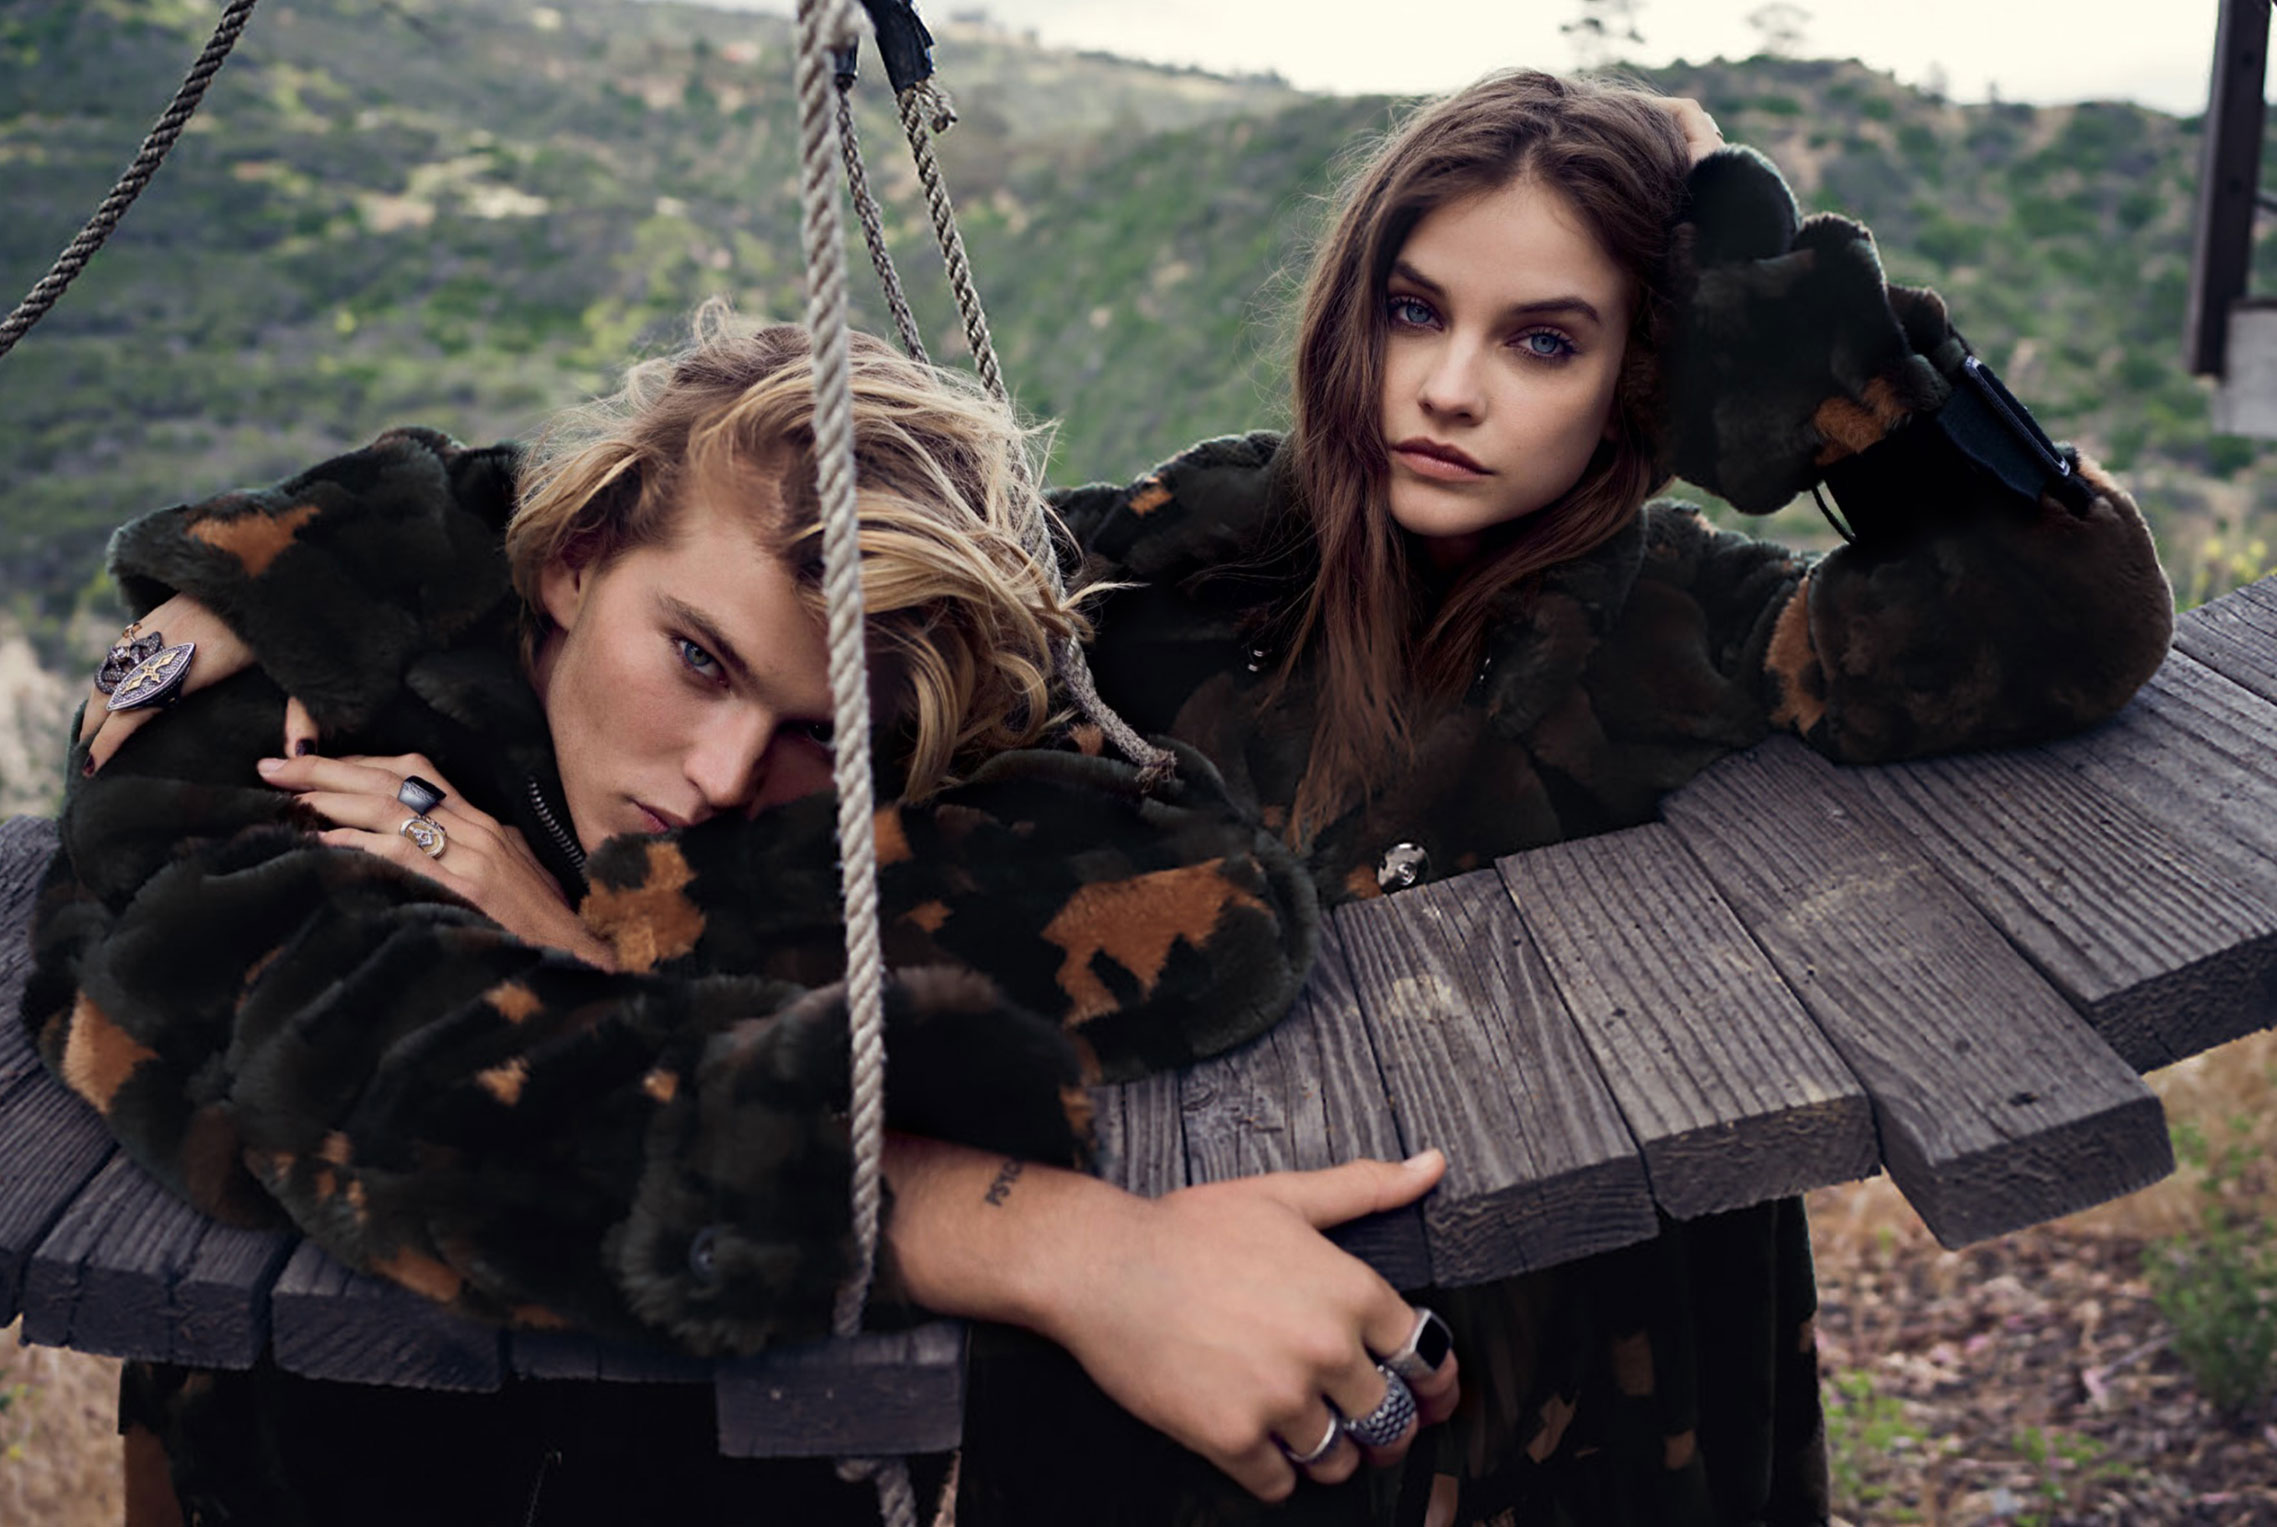 Rogue Riders / Barbara Palvin and Jordan Barrett by Beau Grealy / C Magazine september 2017